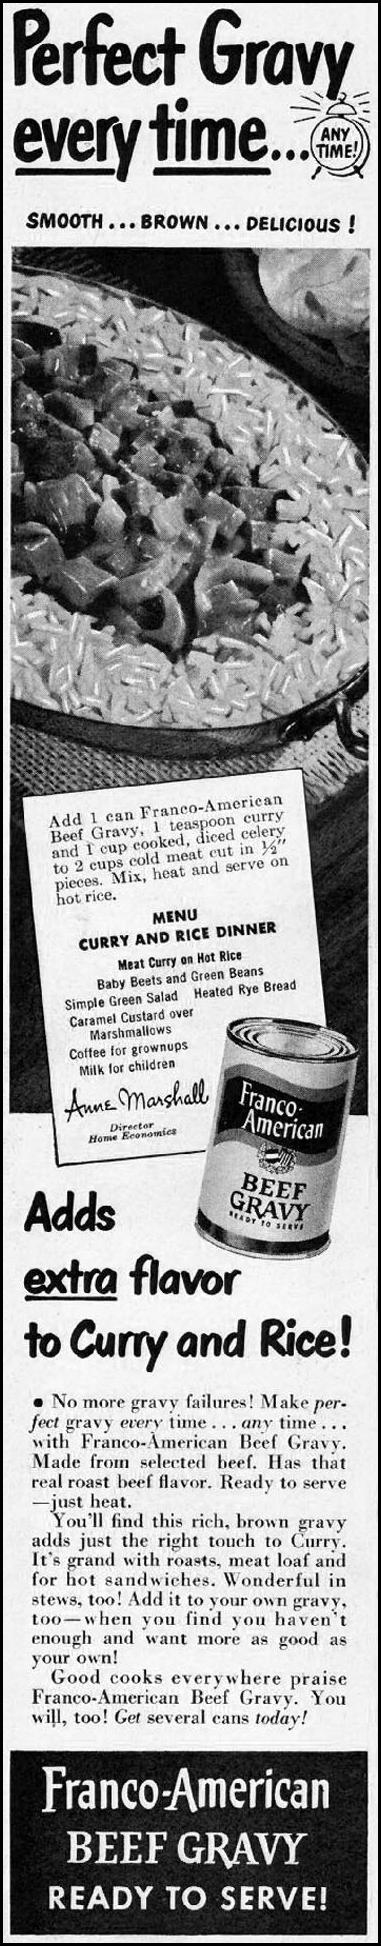 FRANCO-AMERICAN BEEF GRAVY LADIES' HOME JOURNAL 11/01/1950 p. 214